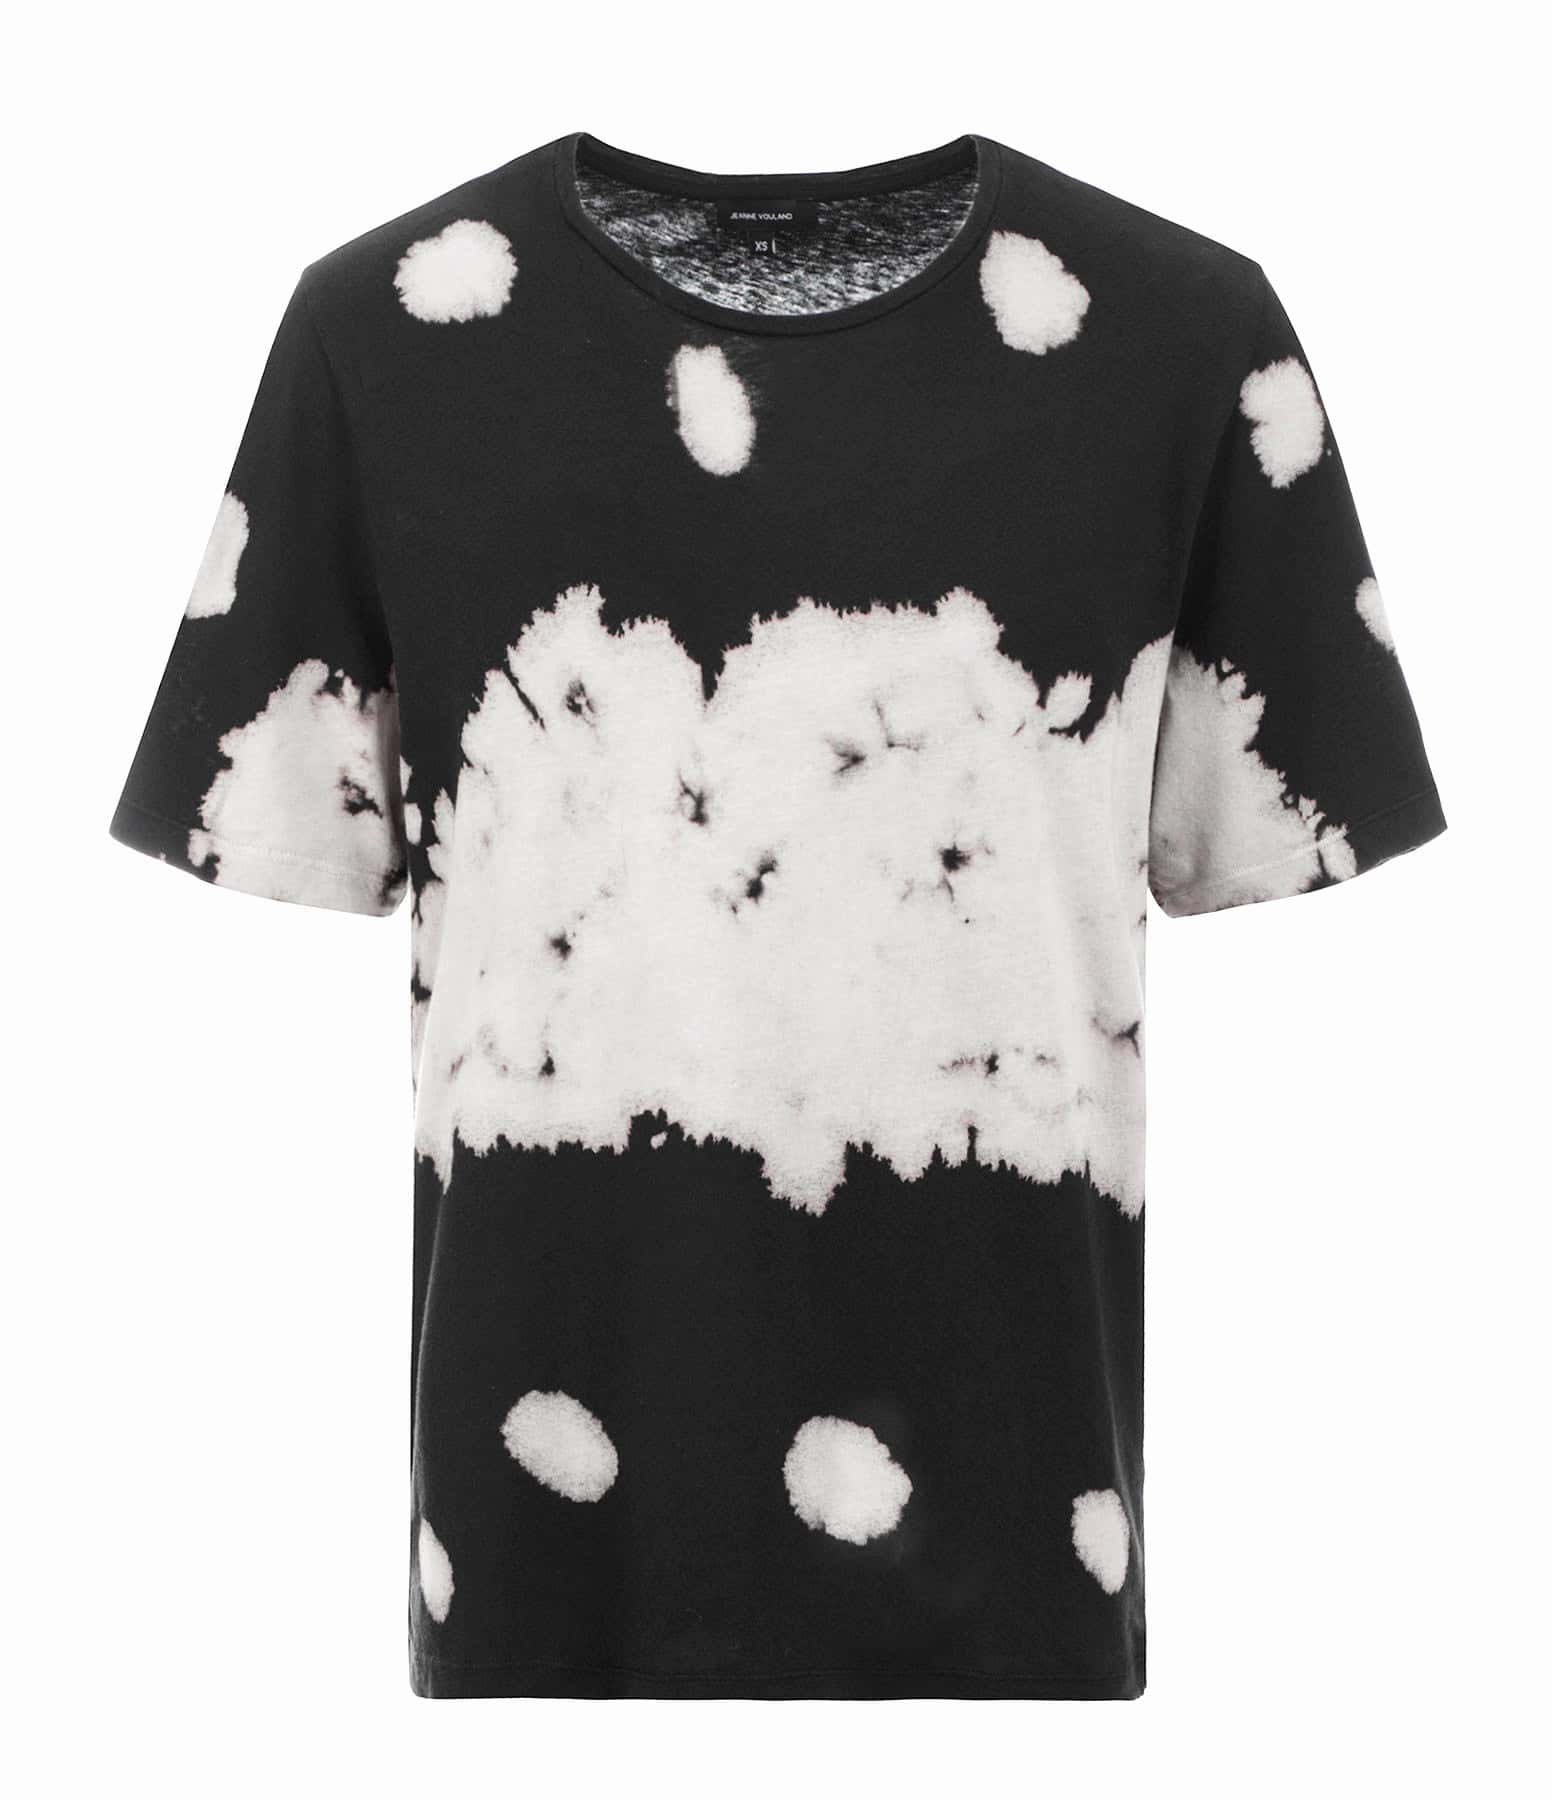 JEANNE VOULAND - Tee-shirt Fay Coton Lin Tie and Dye Noir Blanc